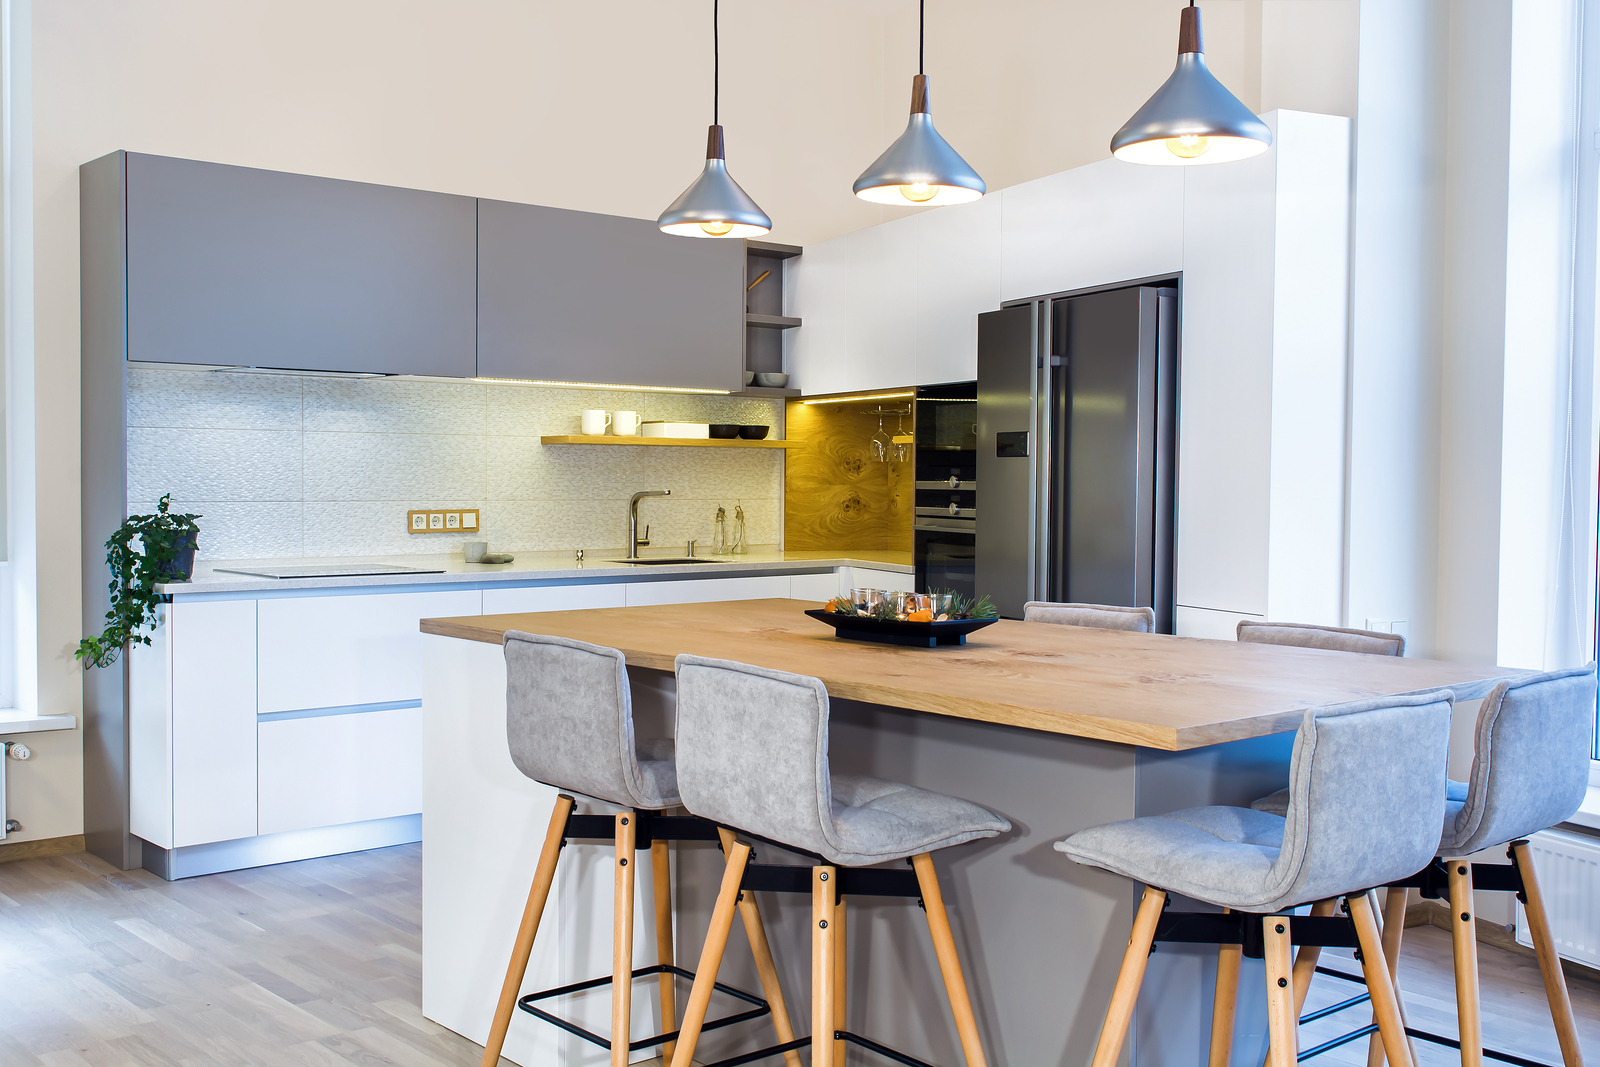 Top tips for lighting interiors